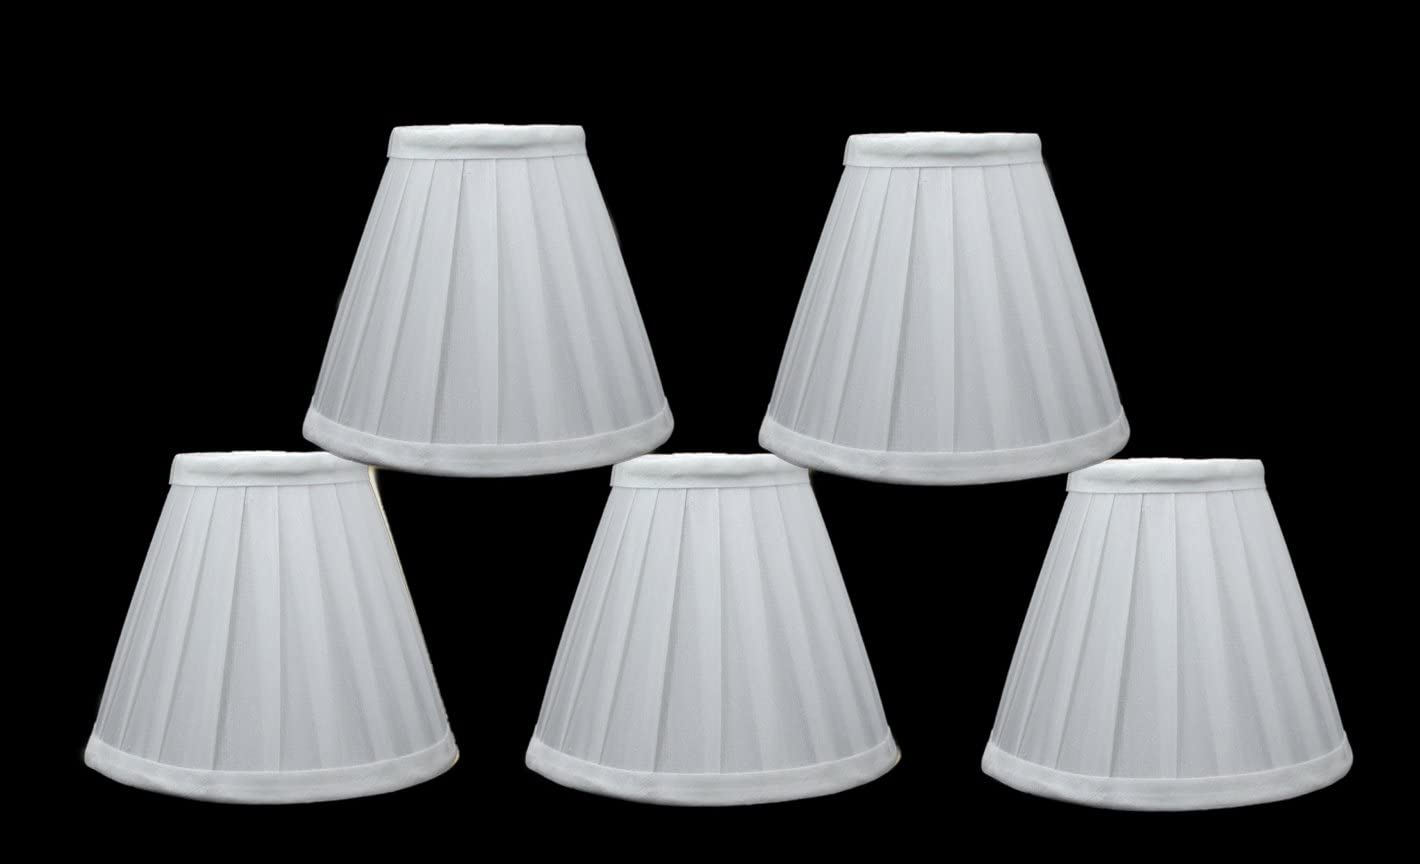 Urbanest Set of 5 Side Pleat Chandelier Lamp Shades, 6-inch, Off White, Clip On